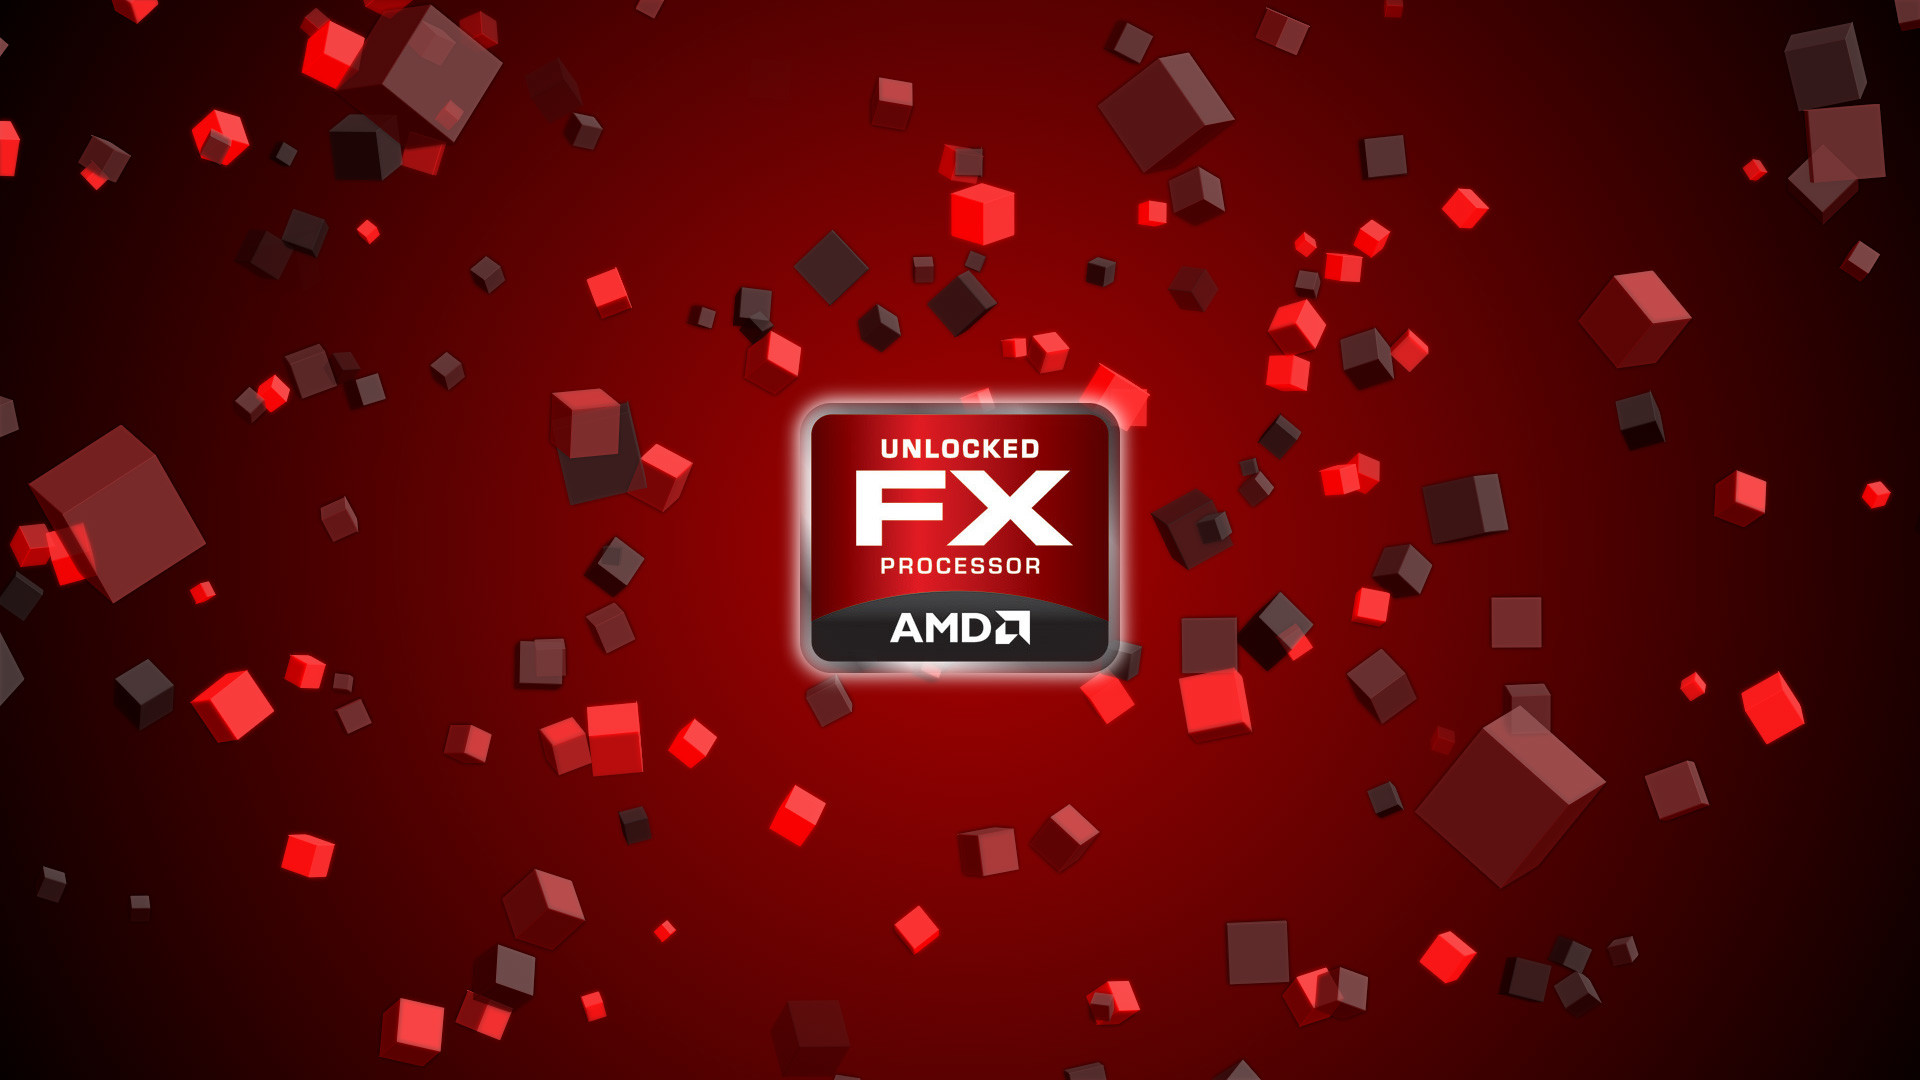 Amd Wallpapers, Amd Backgrounds, Amd Images – Page 5